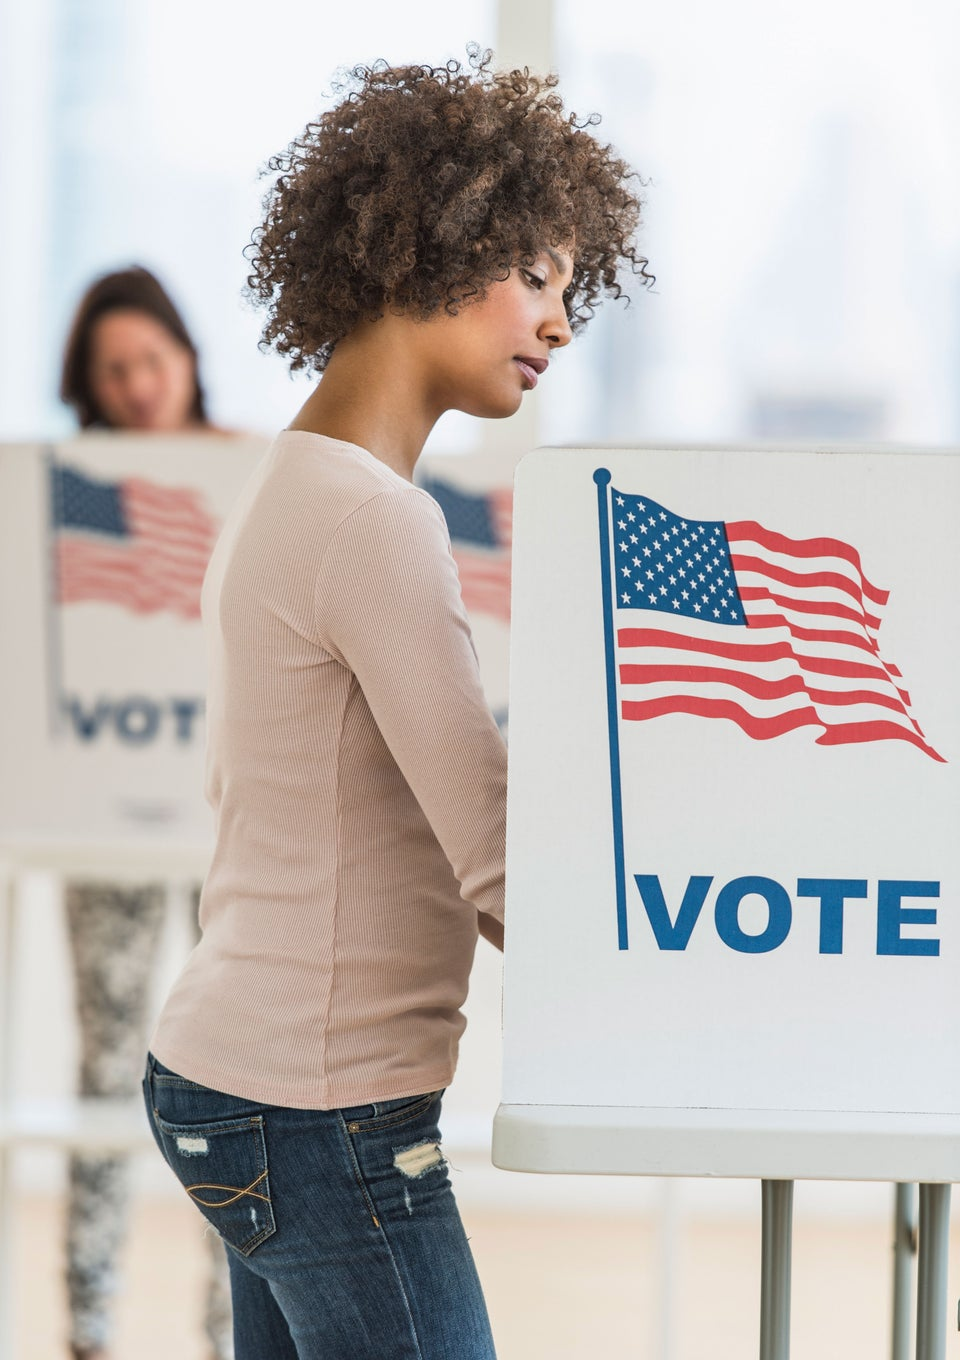 #BlackWomenVote Launches To Amplify Our Voices In The 2016 Election